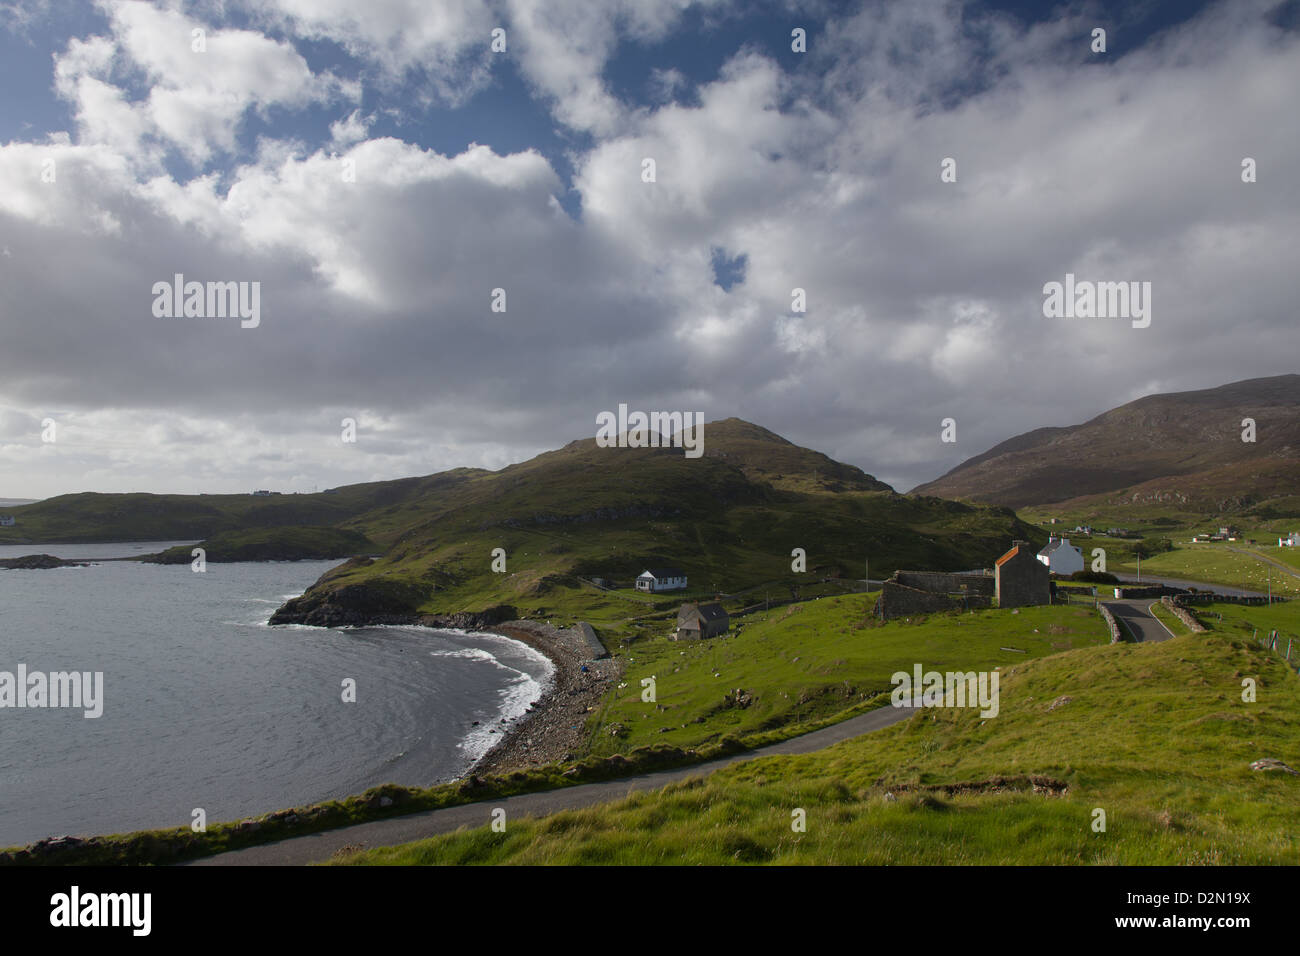 The Mountains and road in Roghadel in the Outer Hebrides - Stock Image